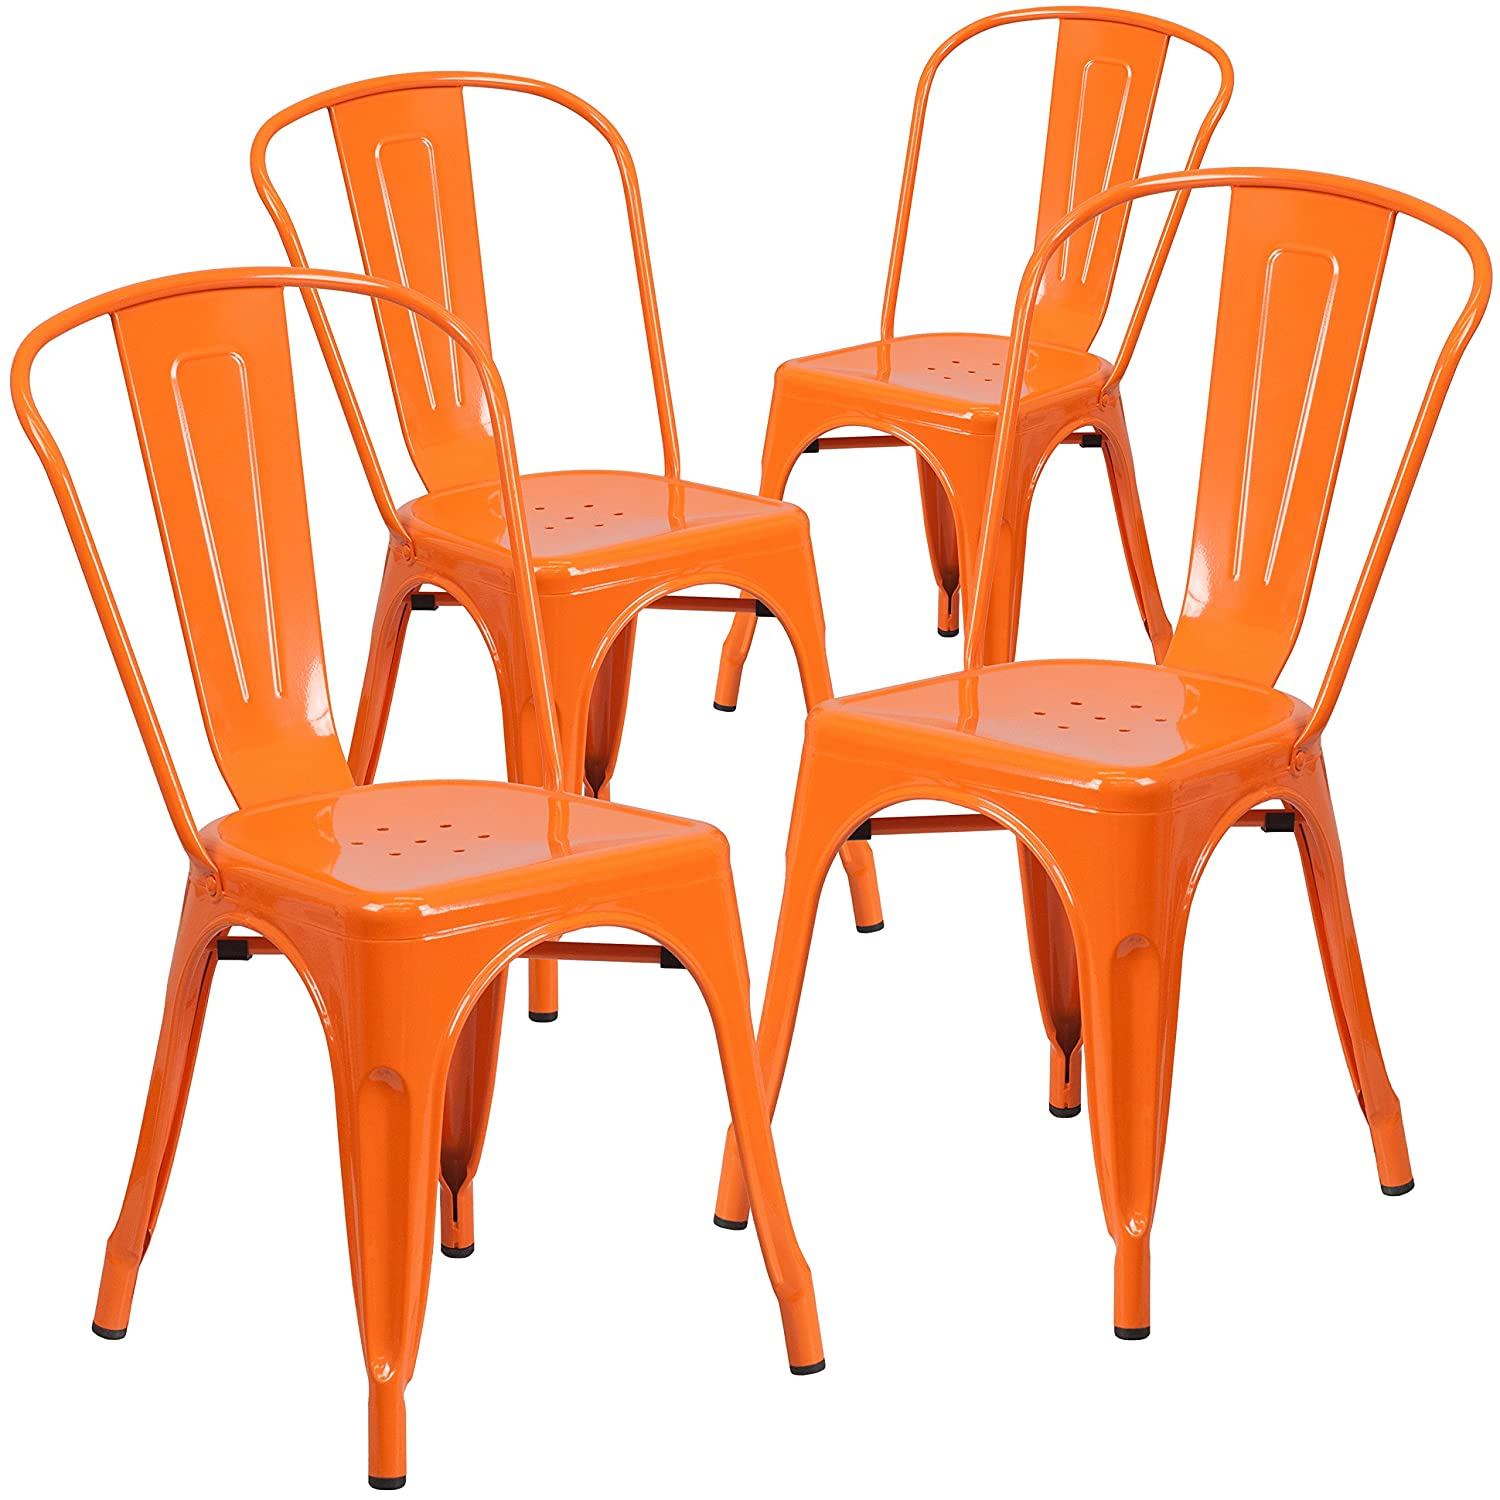 Flash Furniture Metal Indoor-Outdoor Chair (4 Pack) - Orange